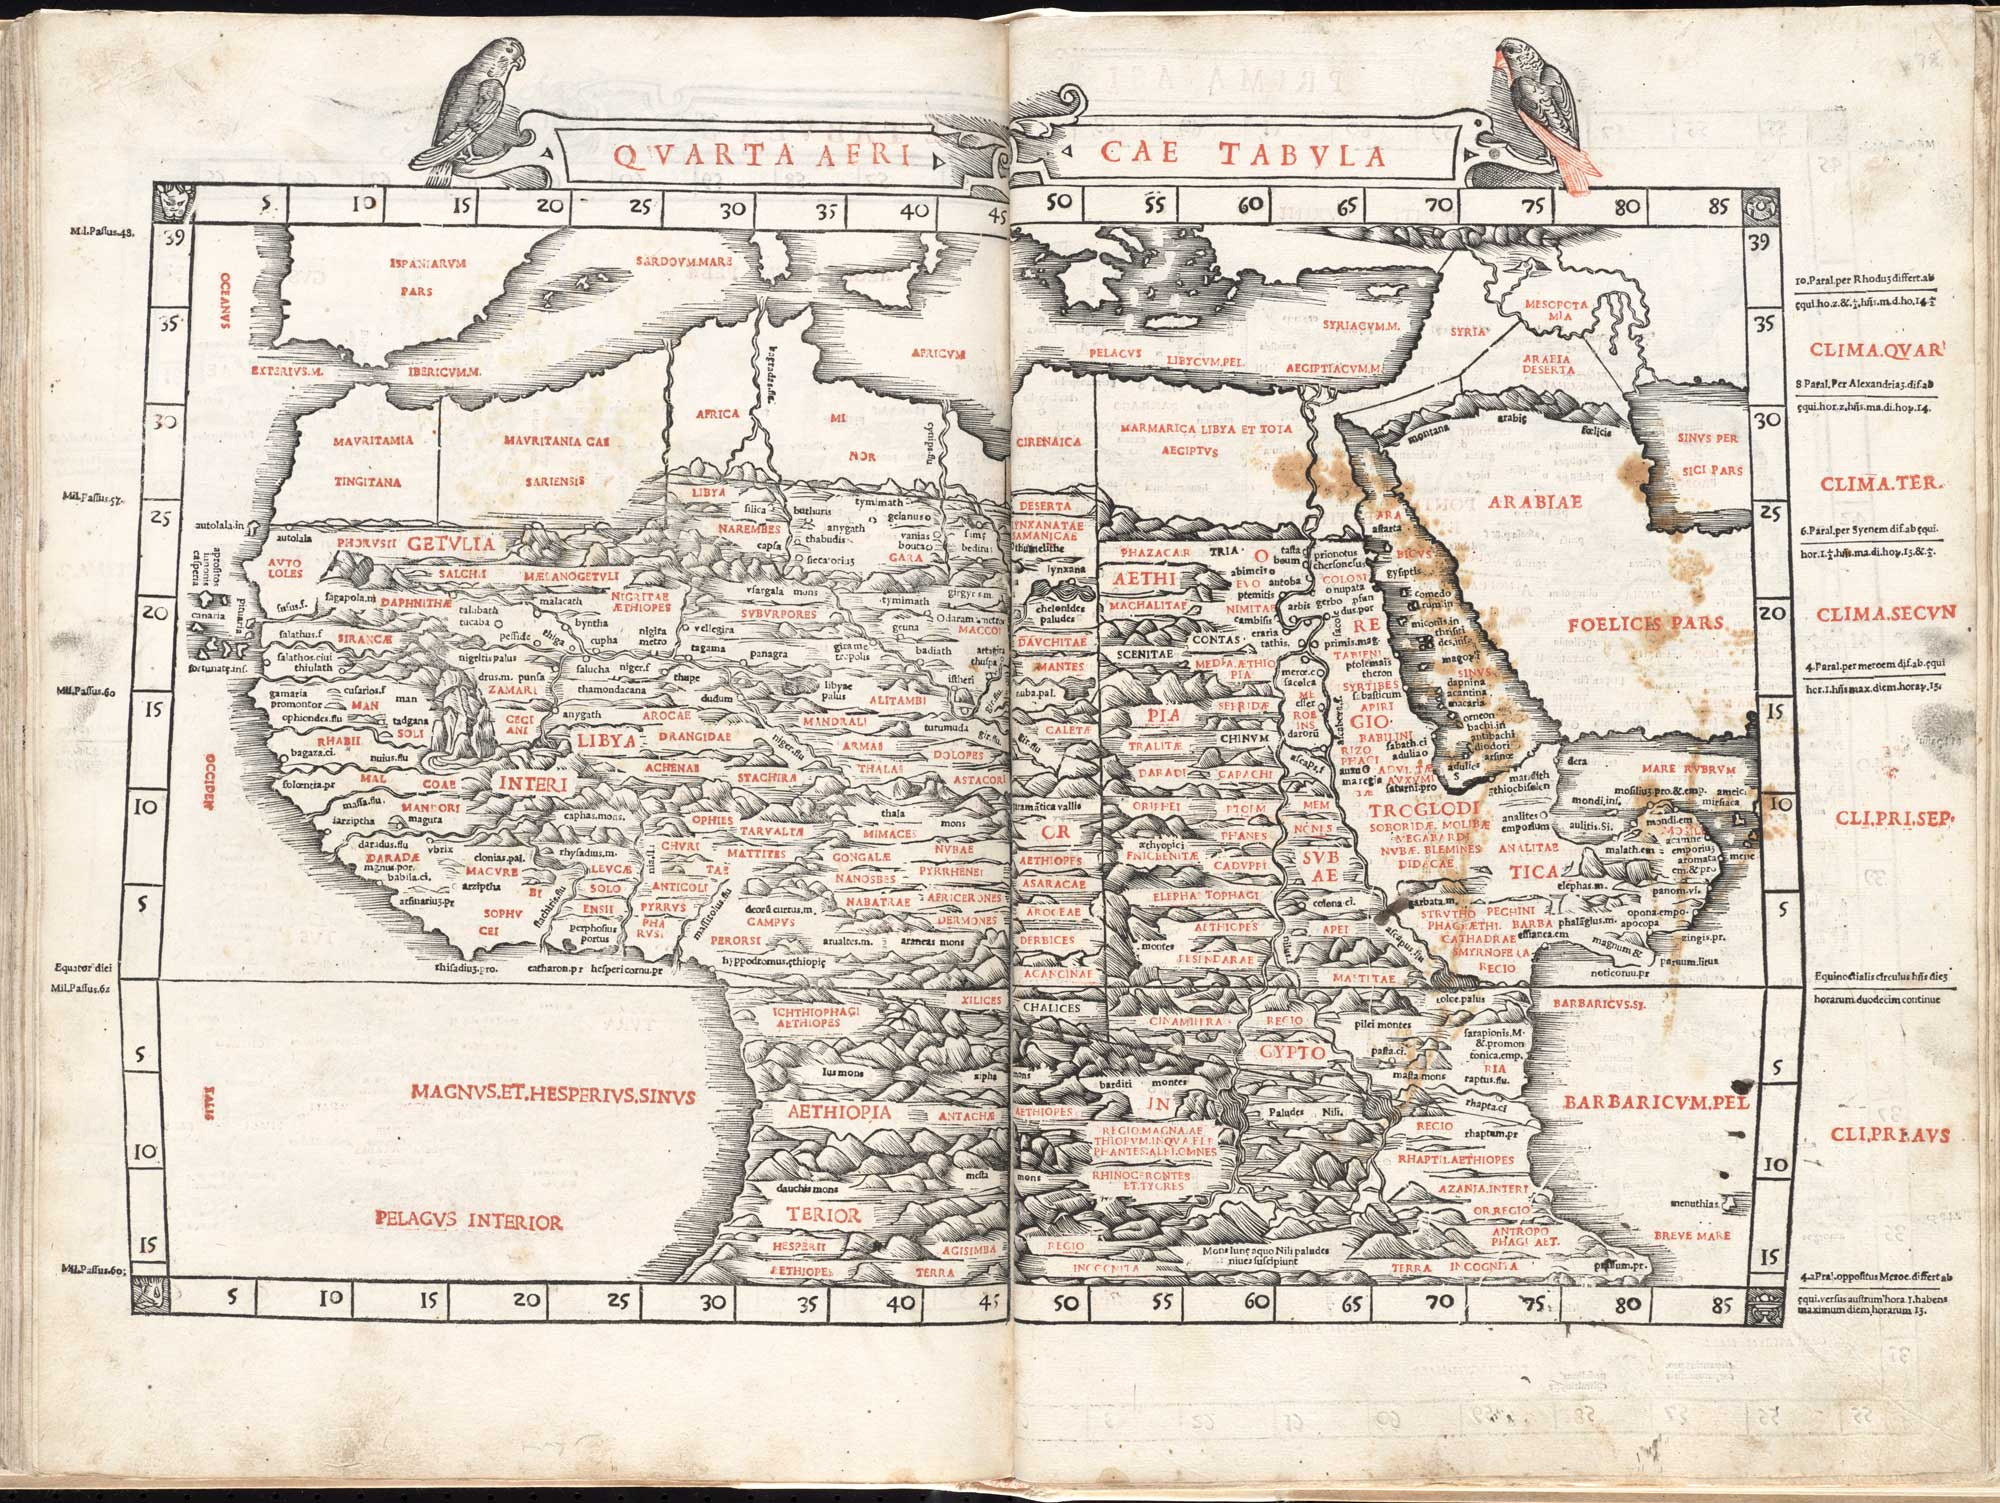 Map of northern Africa from 1511 edition of Ptolemy's Geography